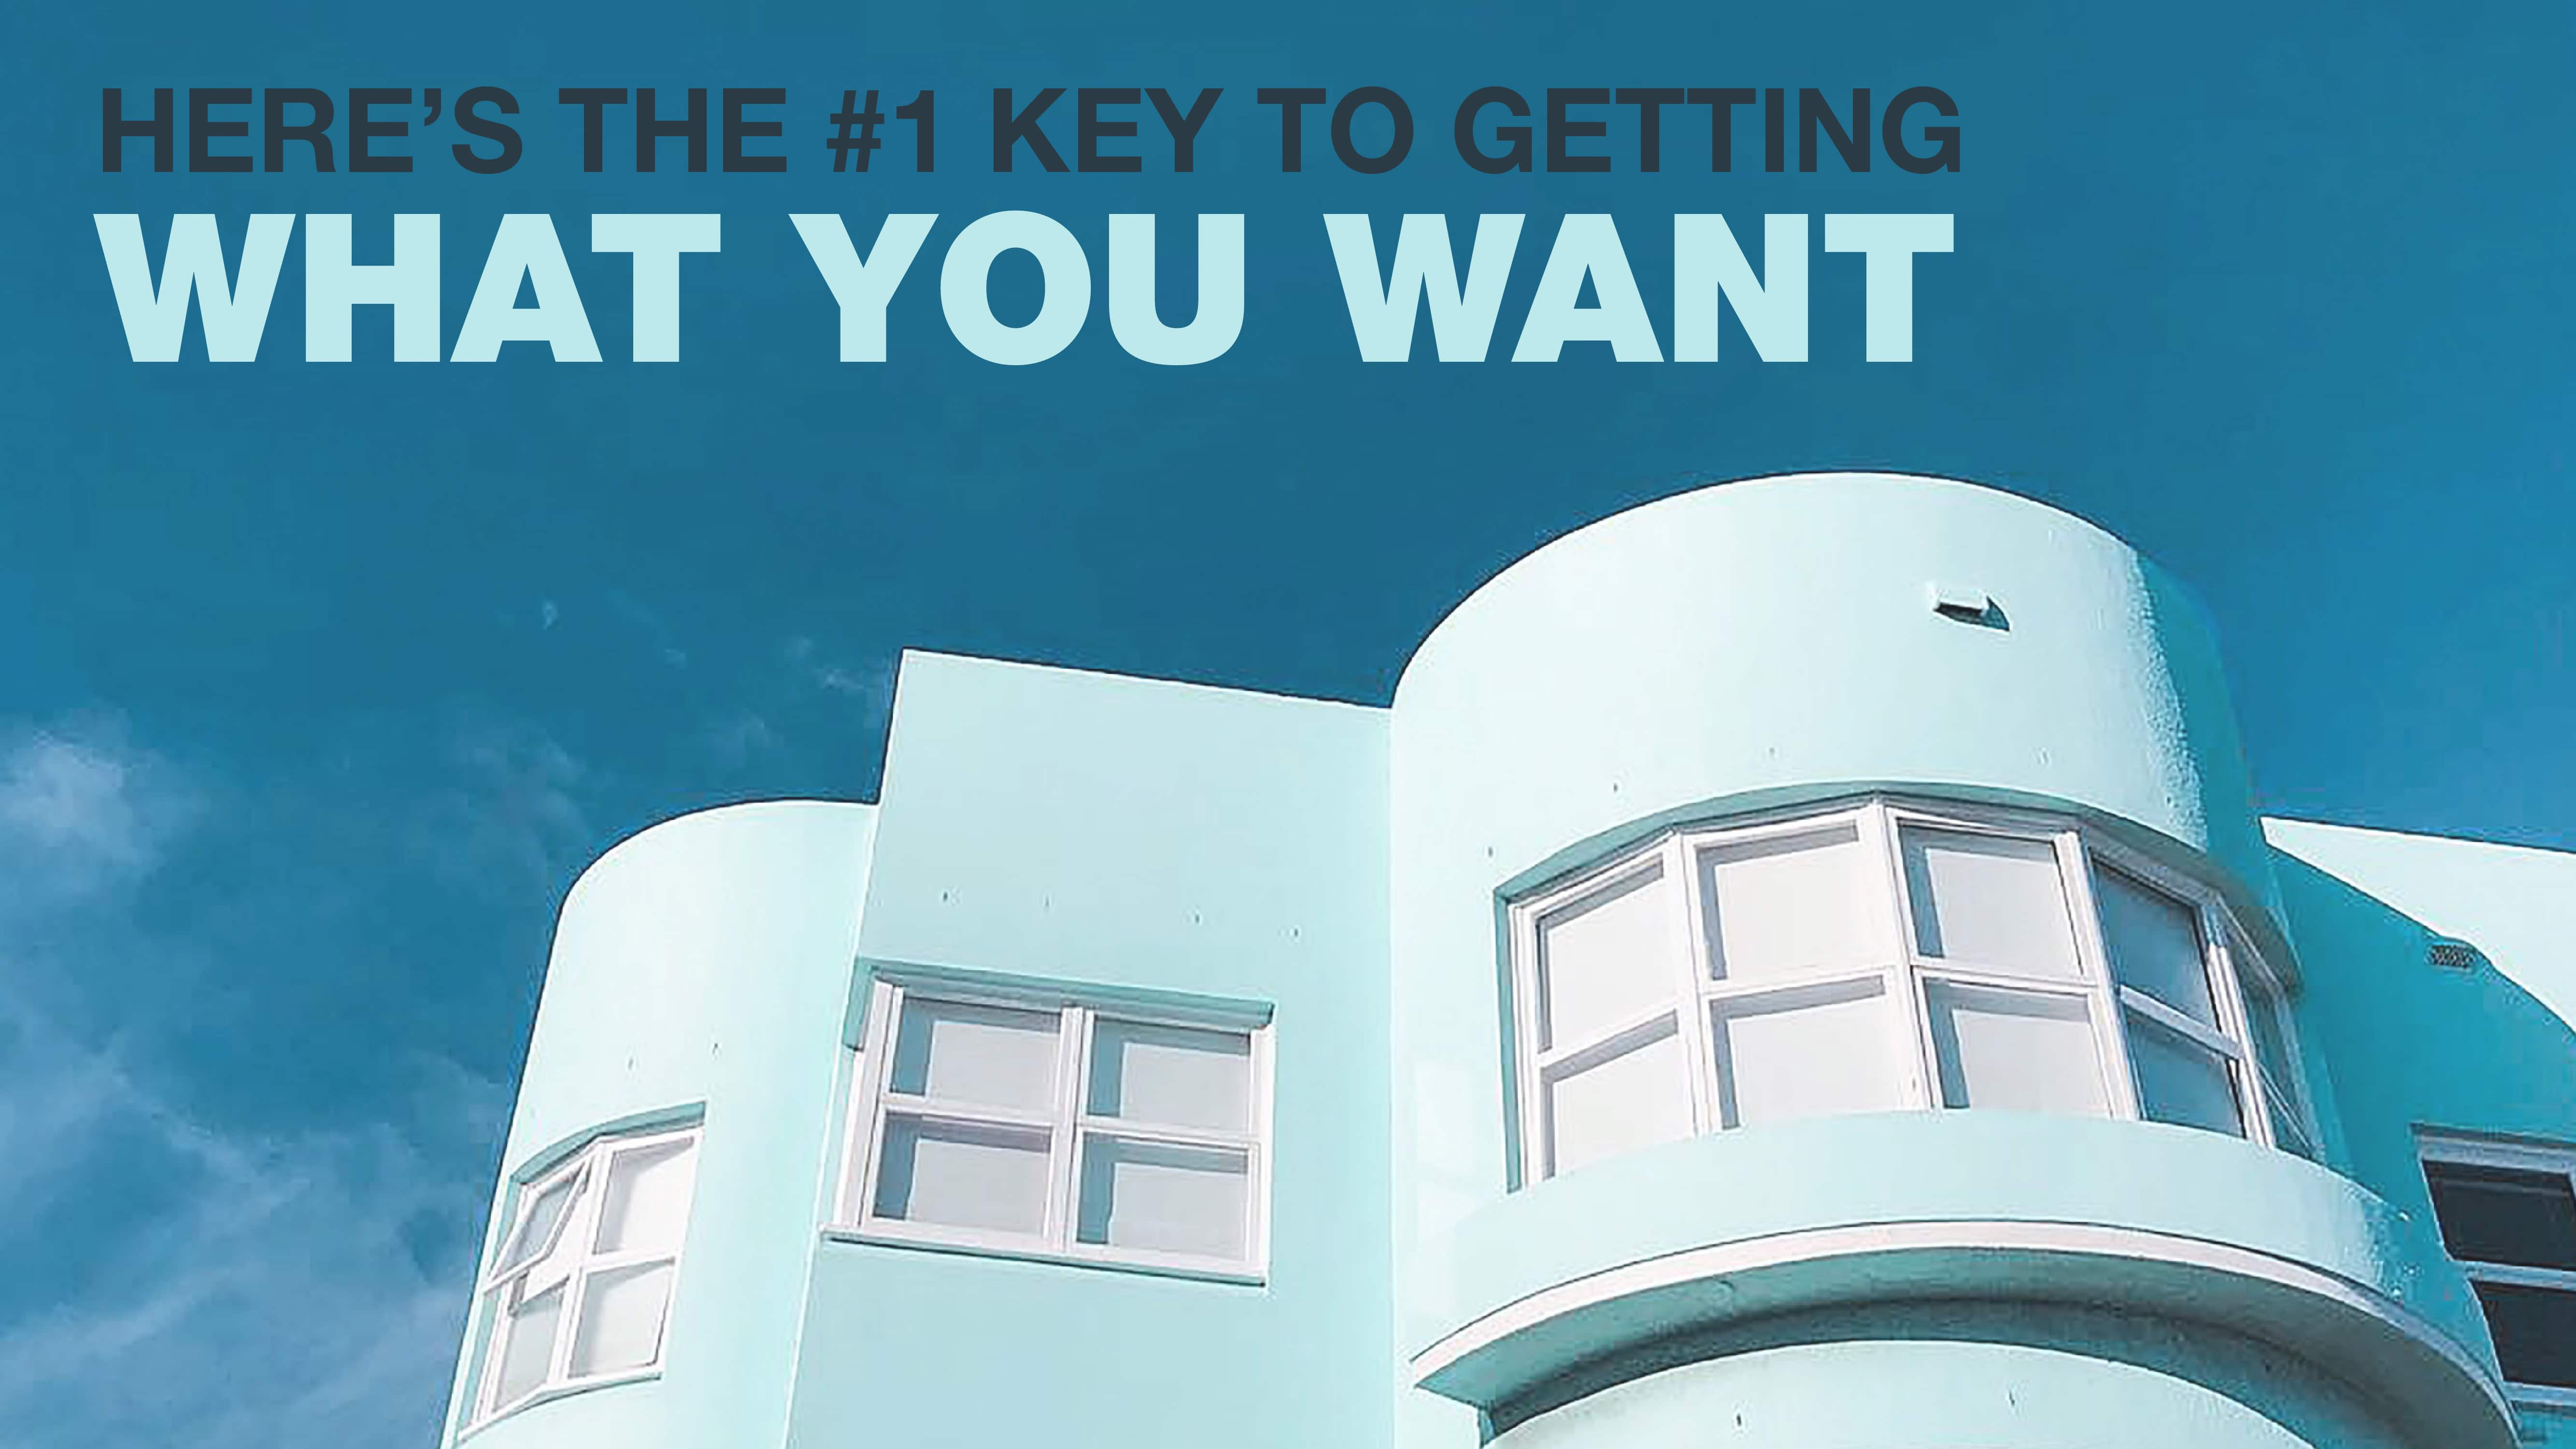 Here's the #1 key to getting what you want